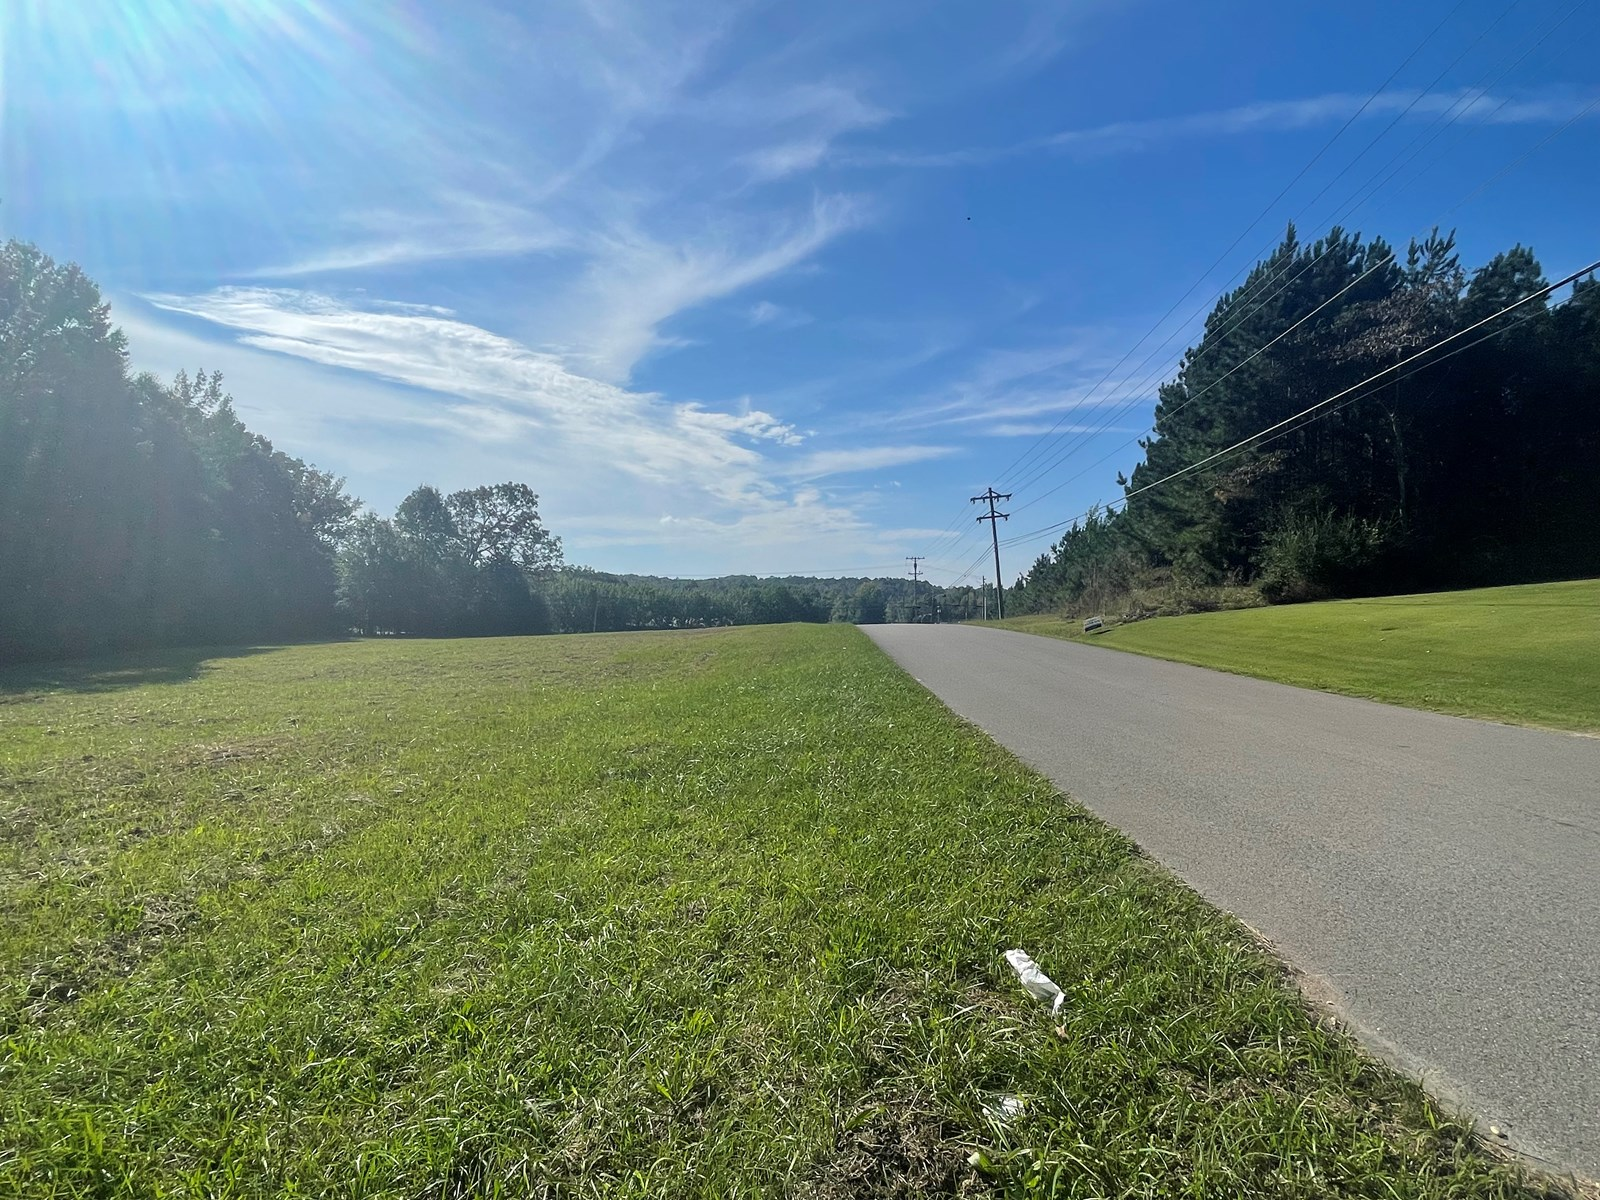 LAND FOR SALE IN SELMER TN TO BUILD A HOME ON